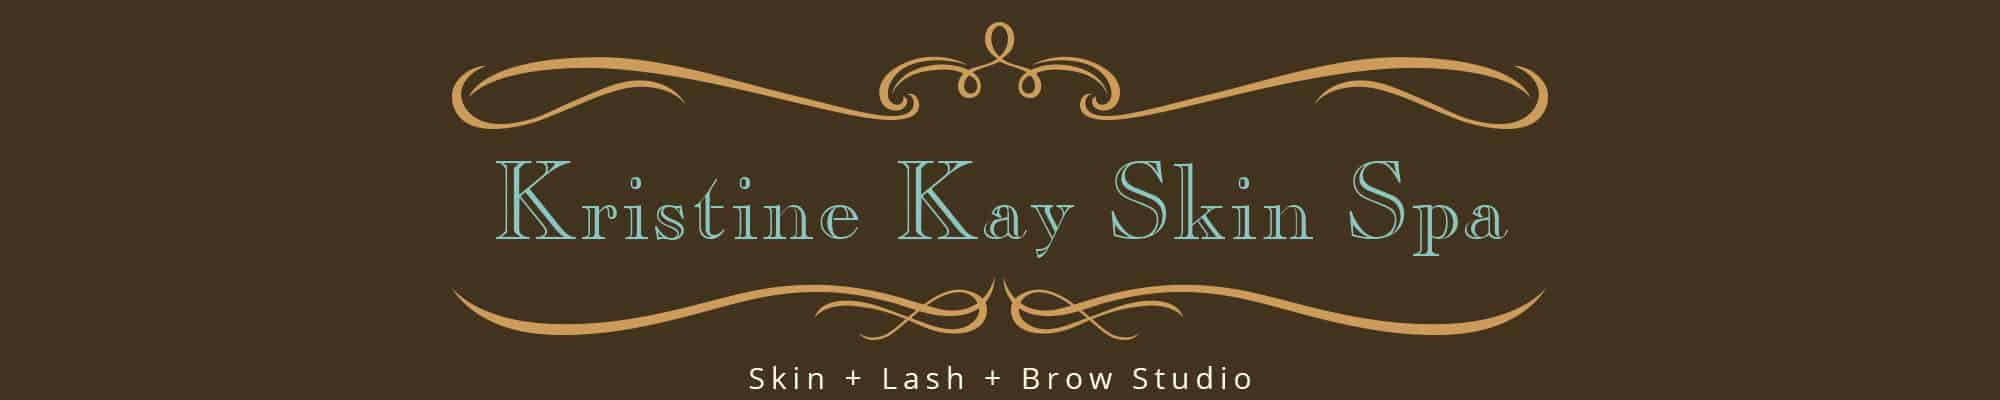 Kristine Kay Skin Spa Kansas City